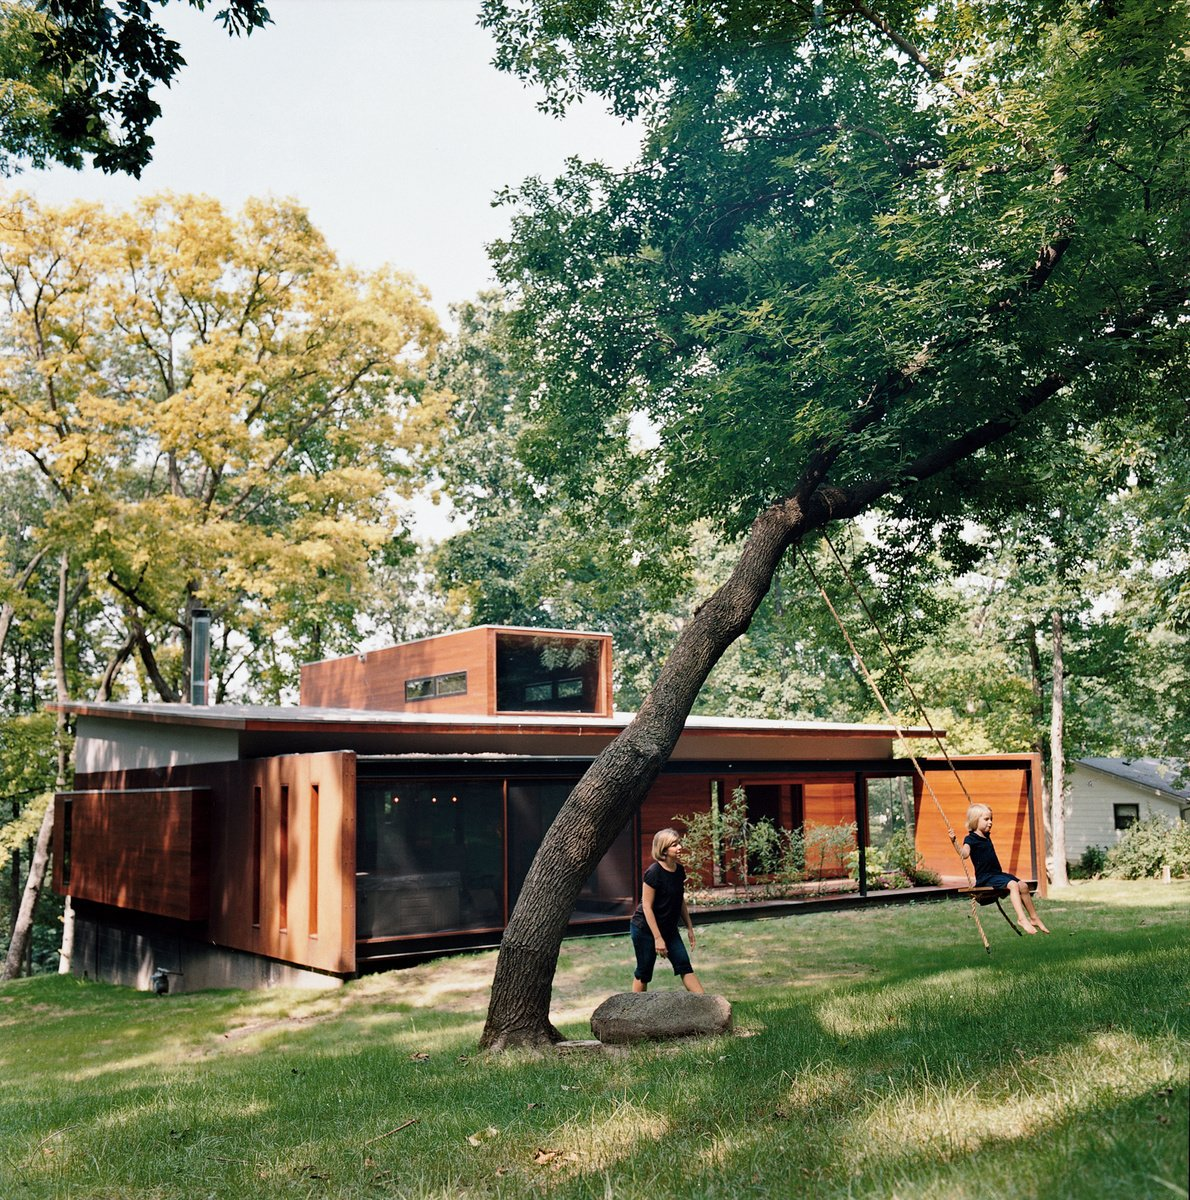 Maintaining a connection to their wooded backyard was an important consideration for the Edstorms. The back wall is designed to let in as much light and air as possible. Read more about this spacious renovation here.  Striking Designs in Wisconsin by William Lamb